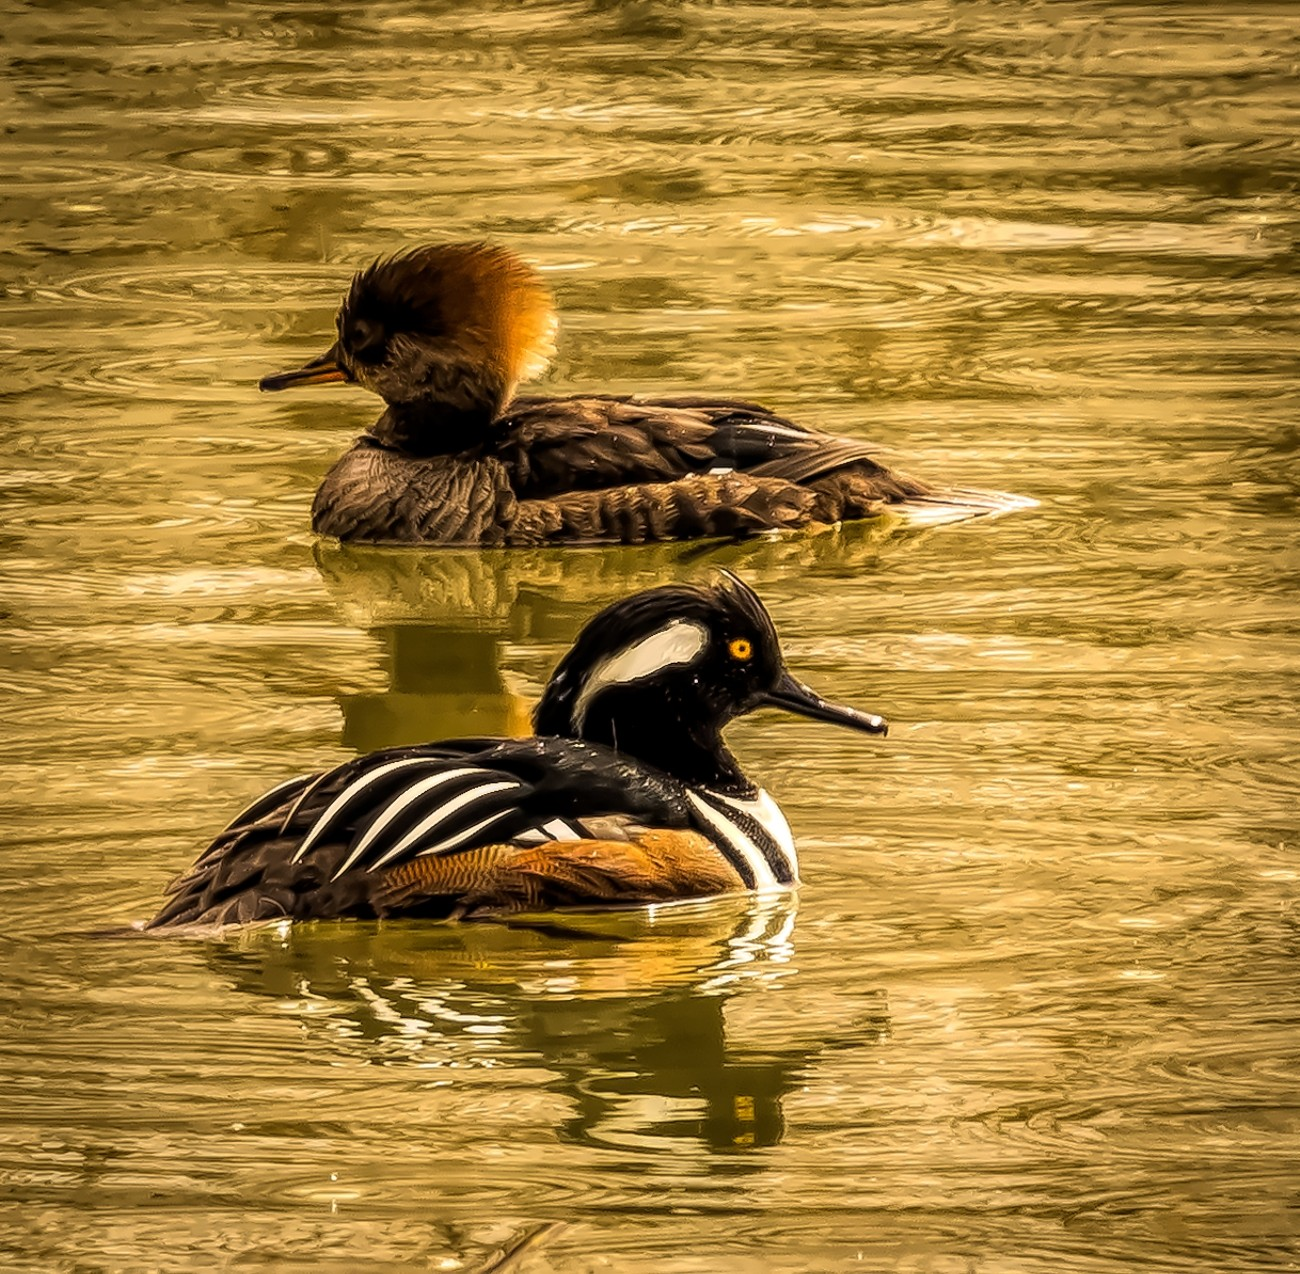 Hooded Mergansers - Male and Female